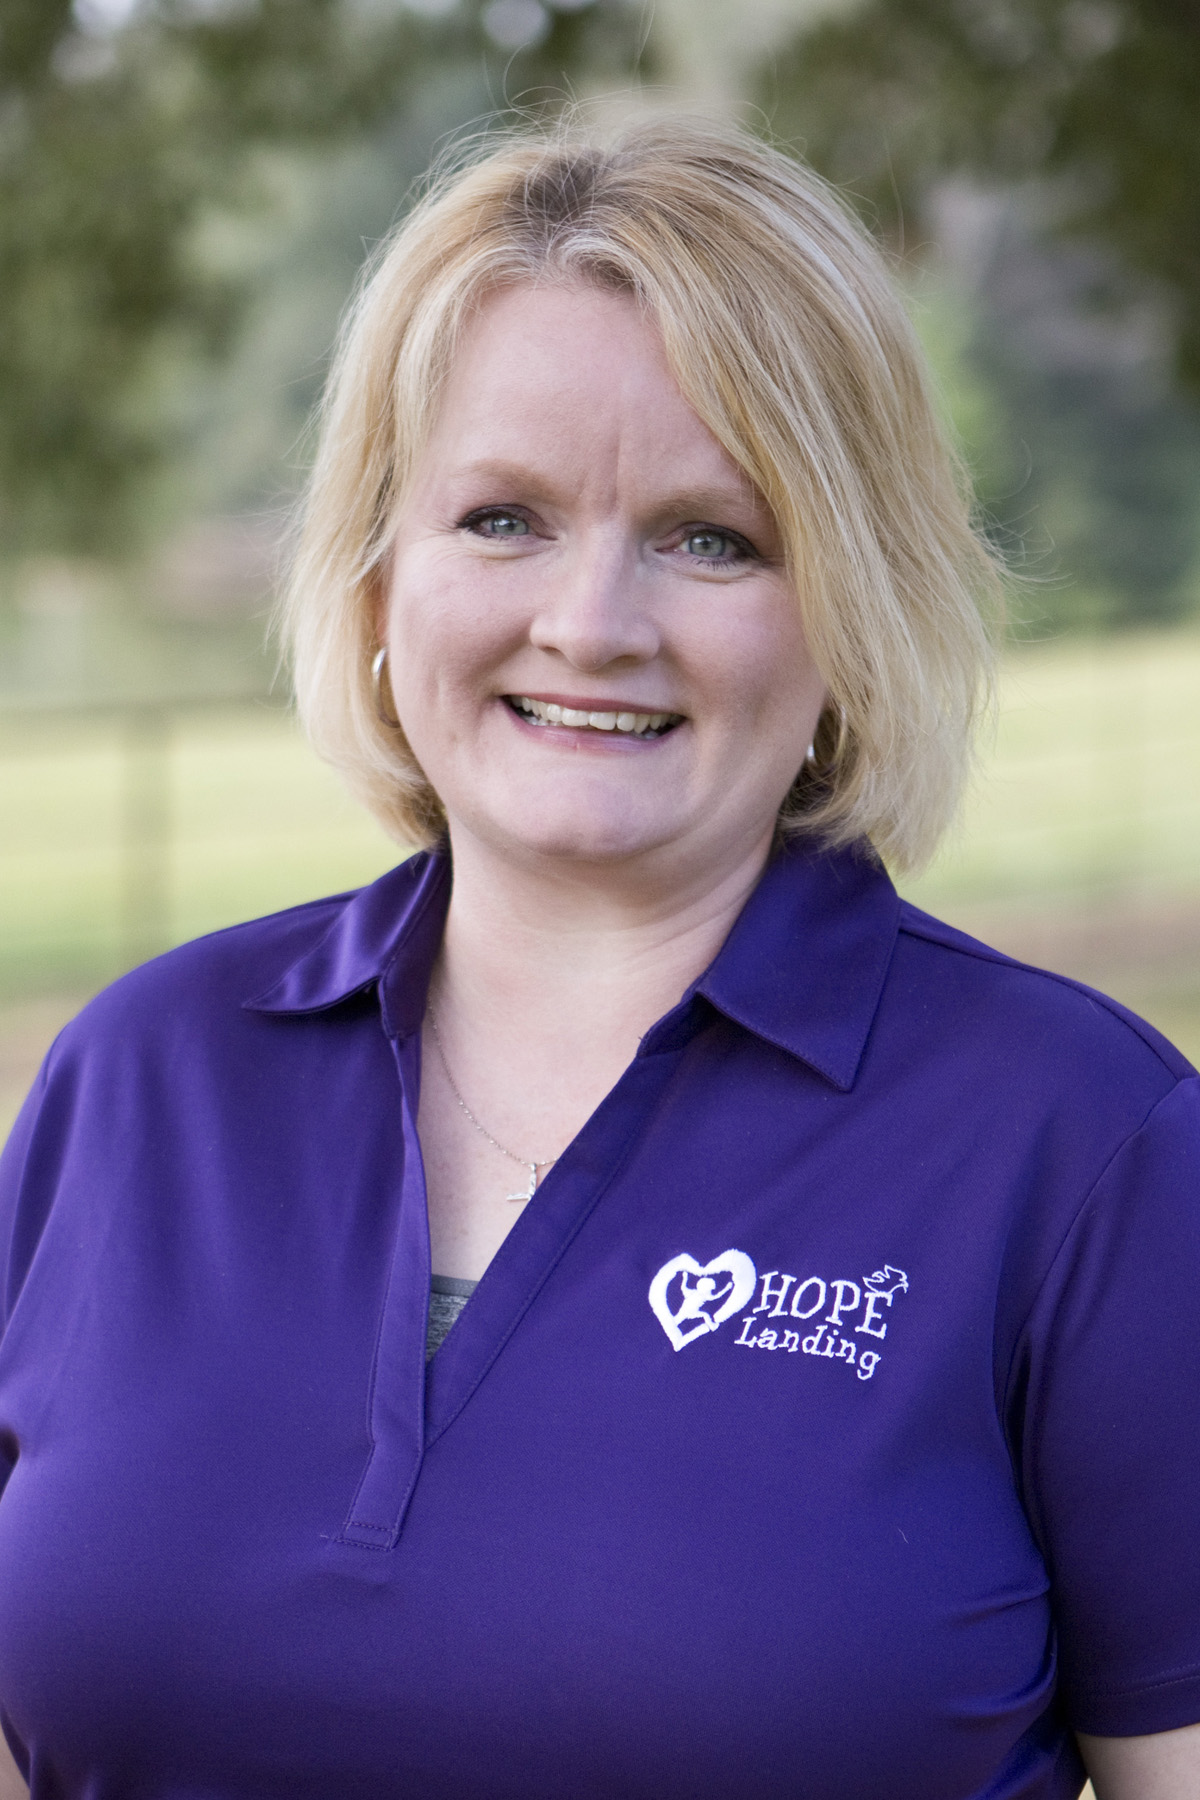 Suzanne Bledsoe, Director of Therapy